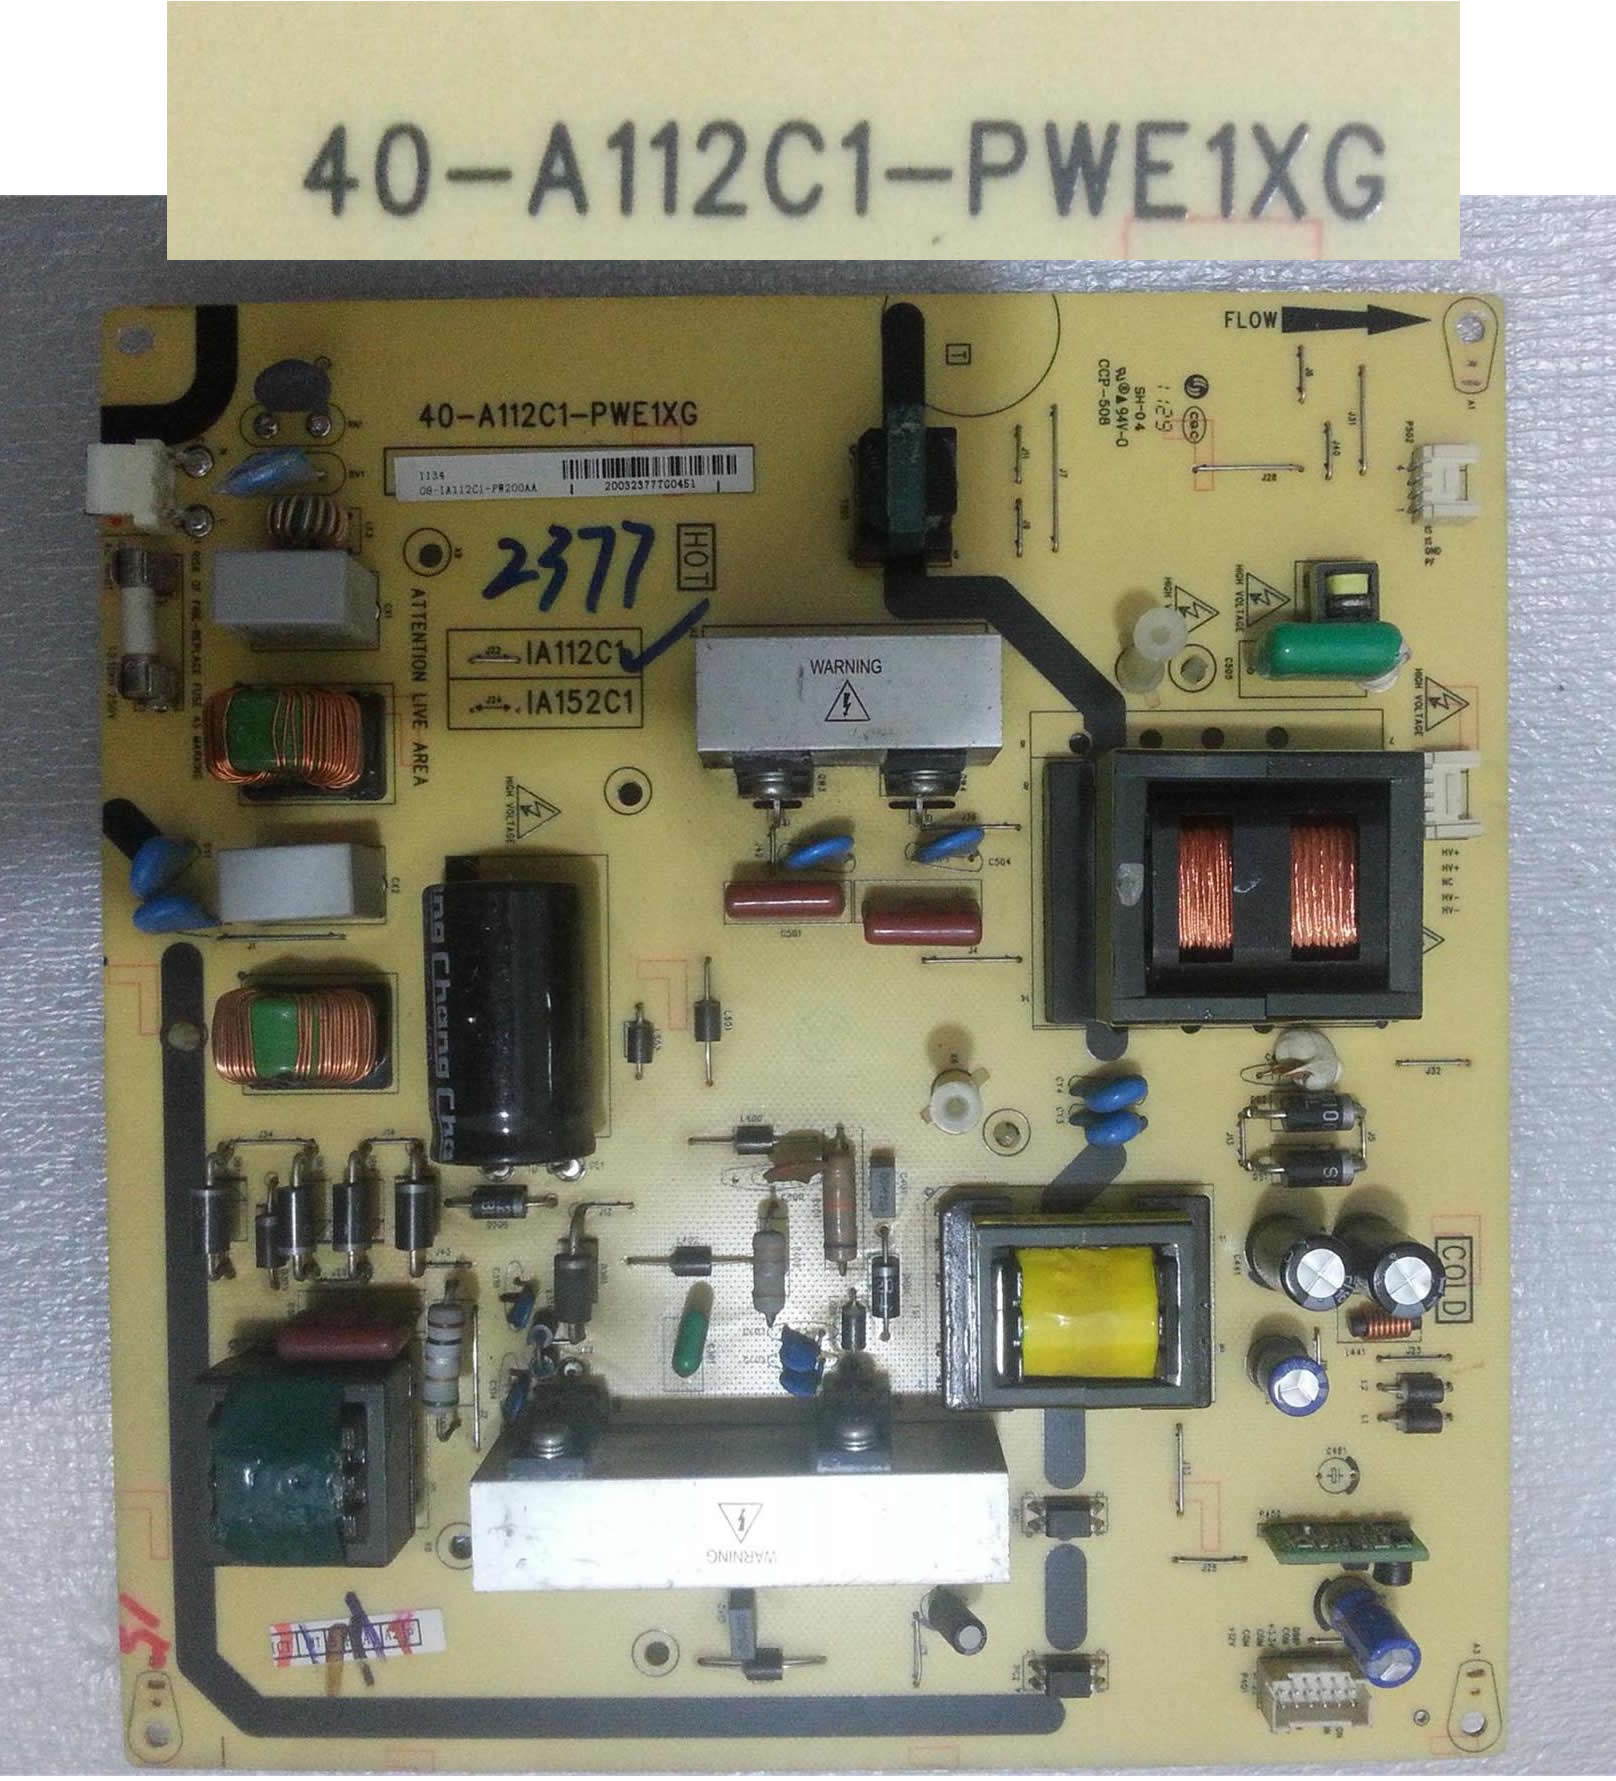 40-A112C1-PWE1XG 08-IA152C1-PW200AA power board